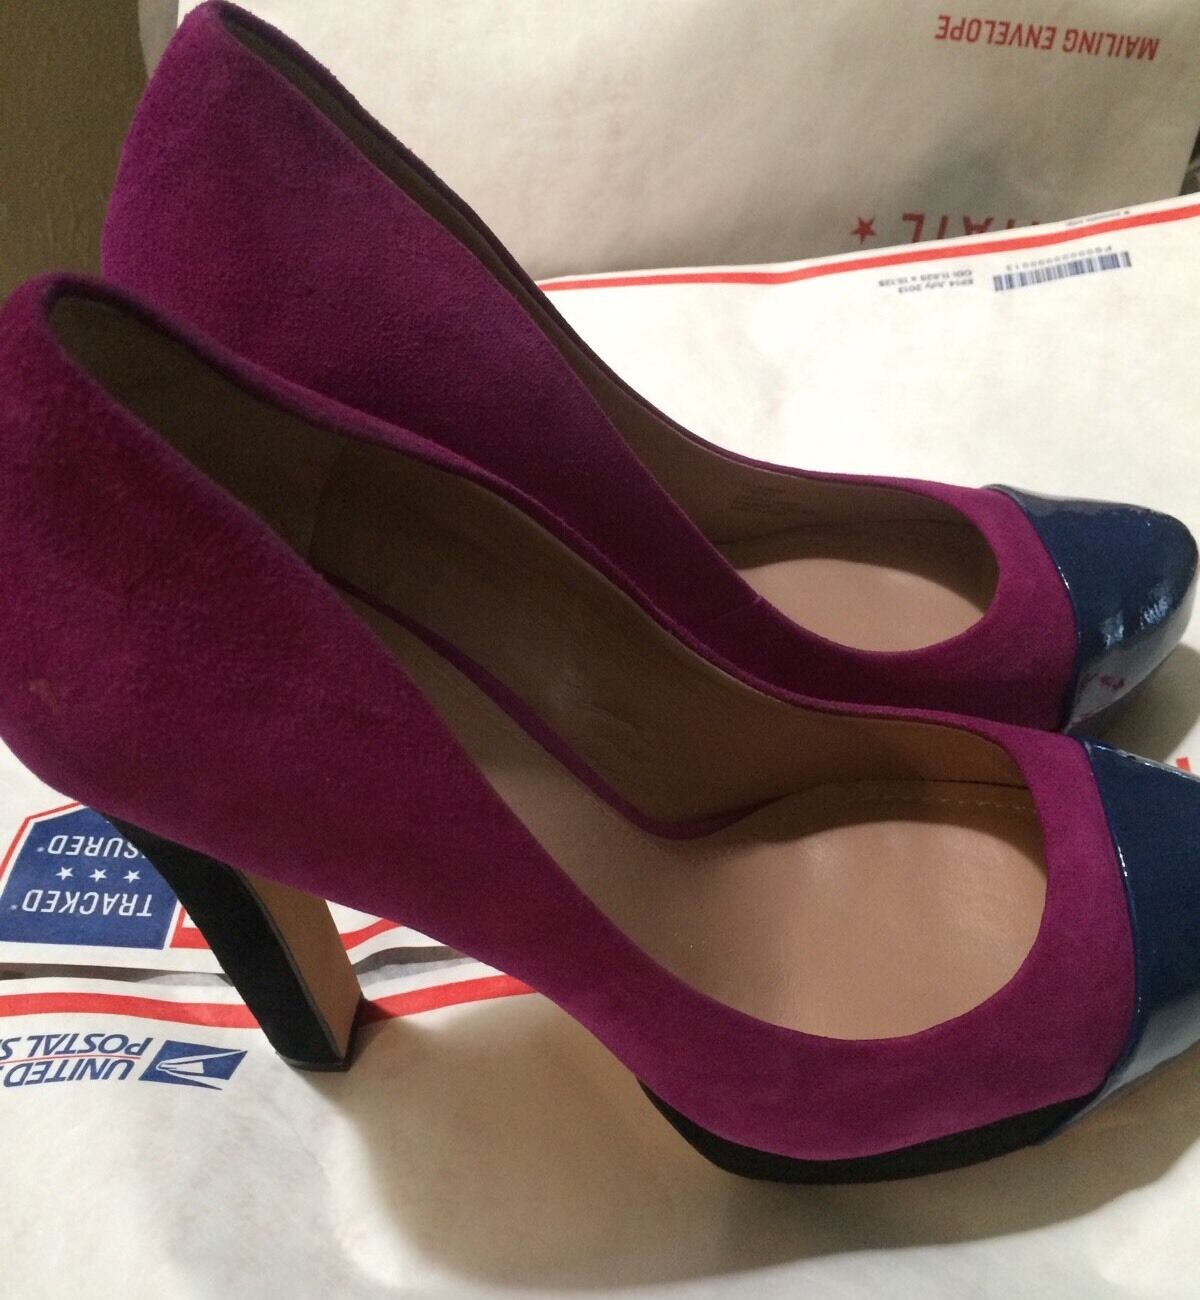 10 NEW Vince Camuto Pink  bluee Suede And Patent Leather Platform shoes